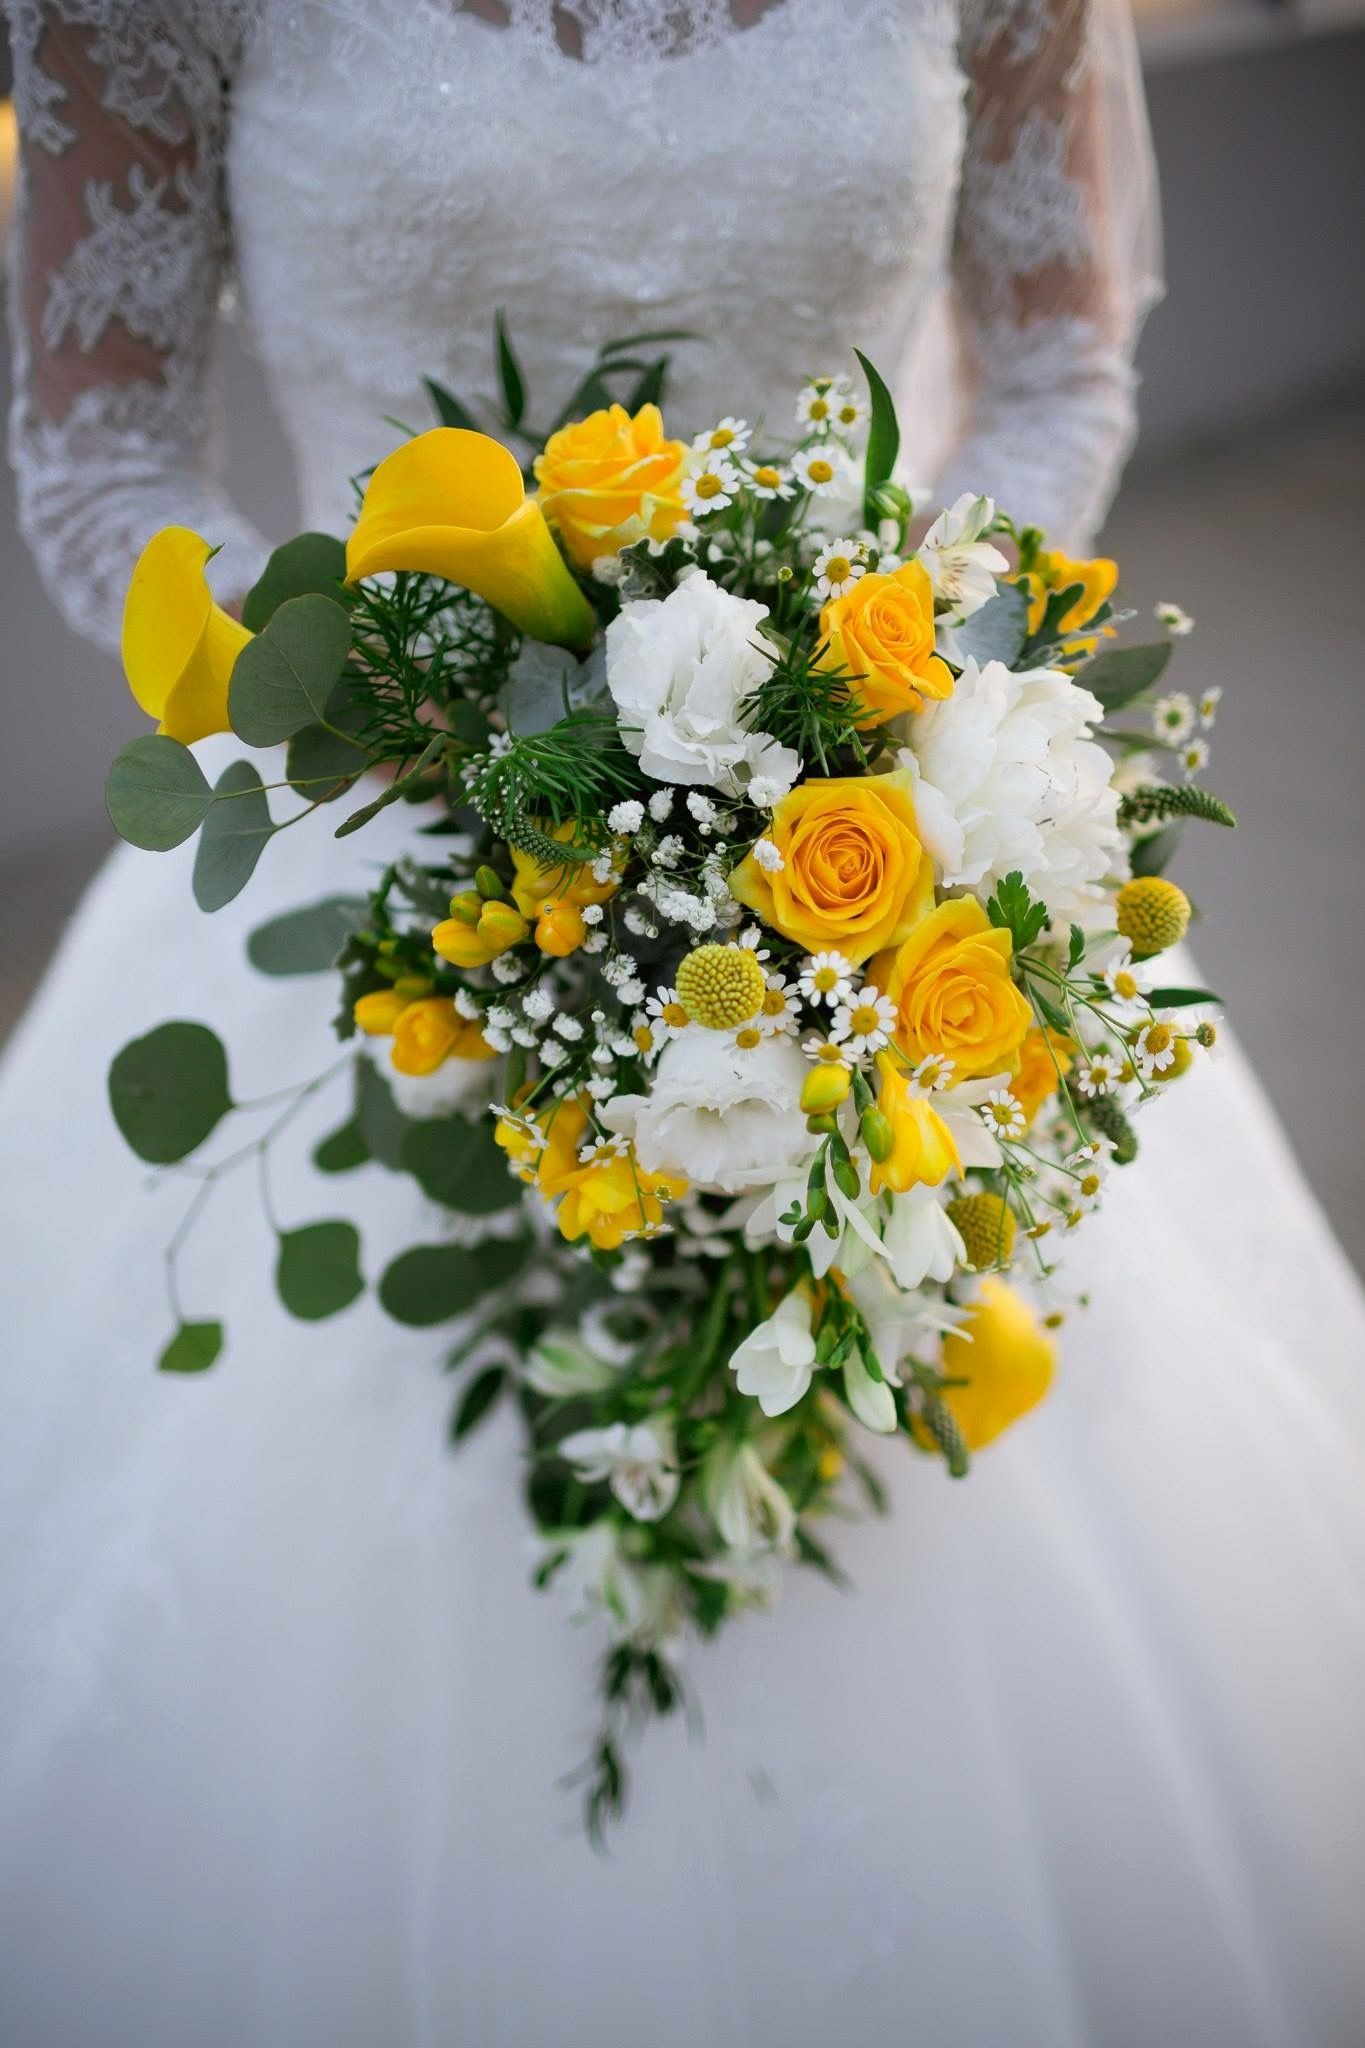 Pin By Danielle Blyth On Our Yellow Grey Wedding Pinterest